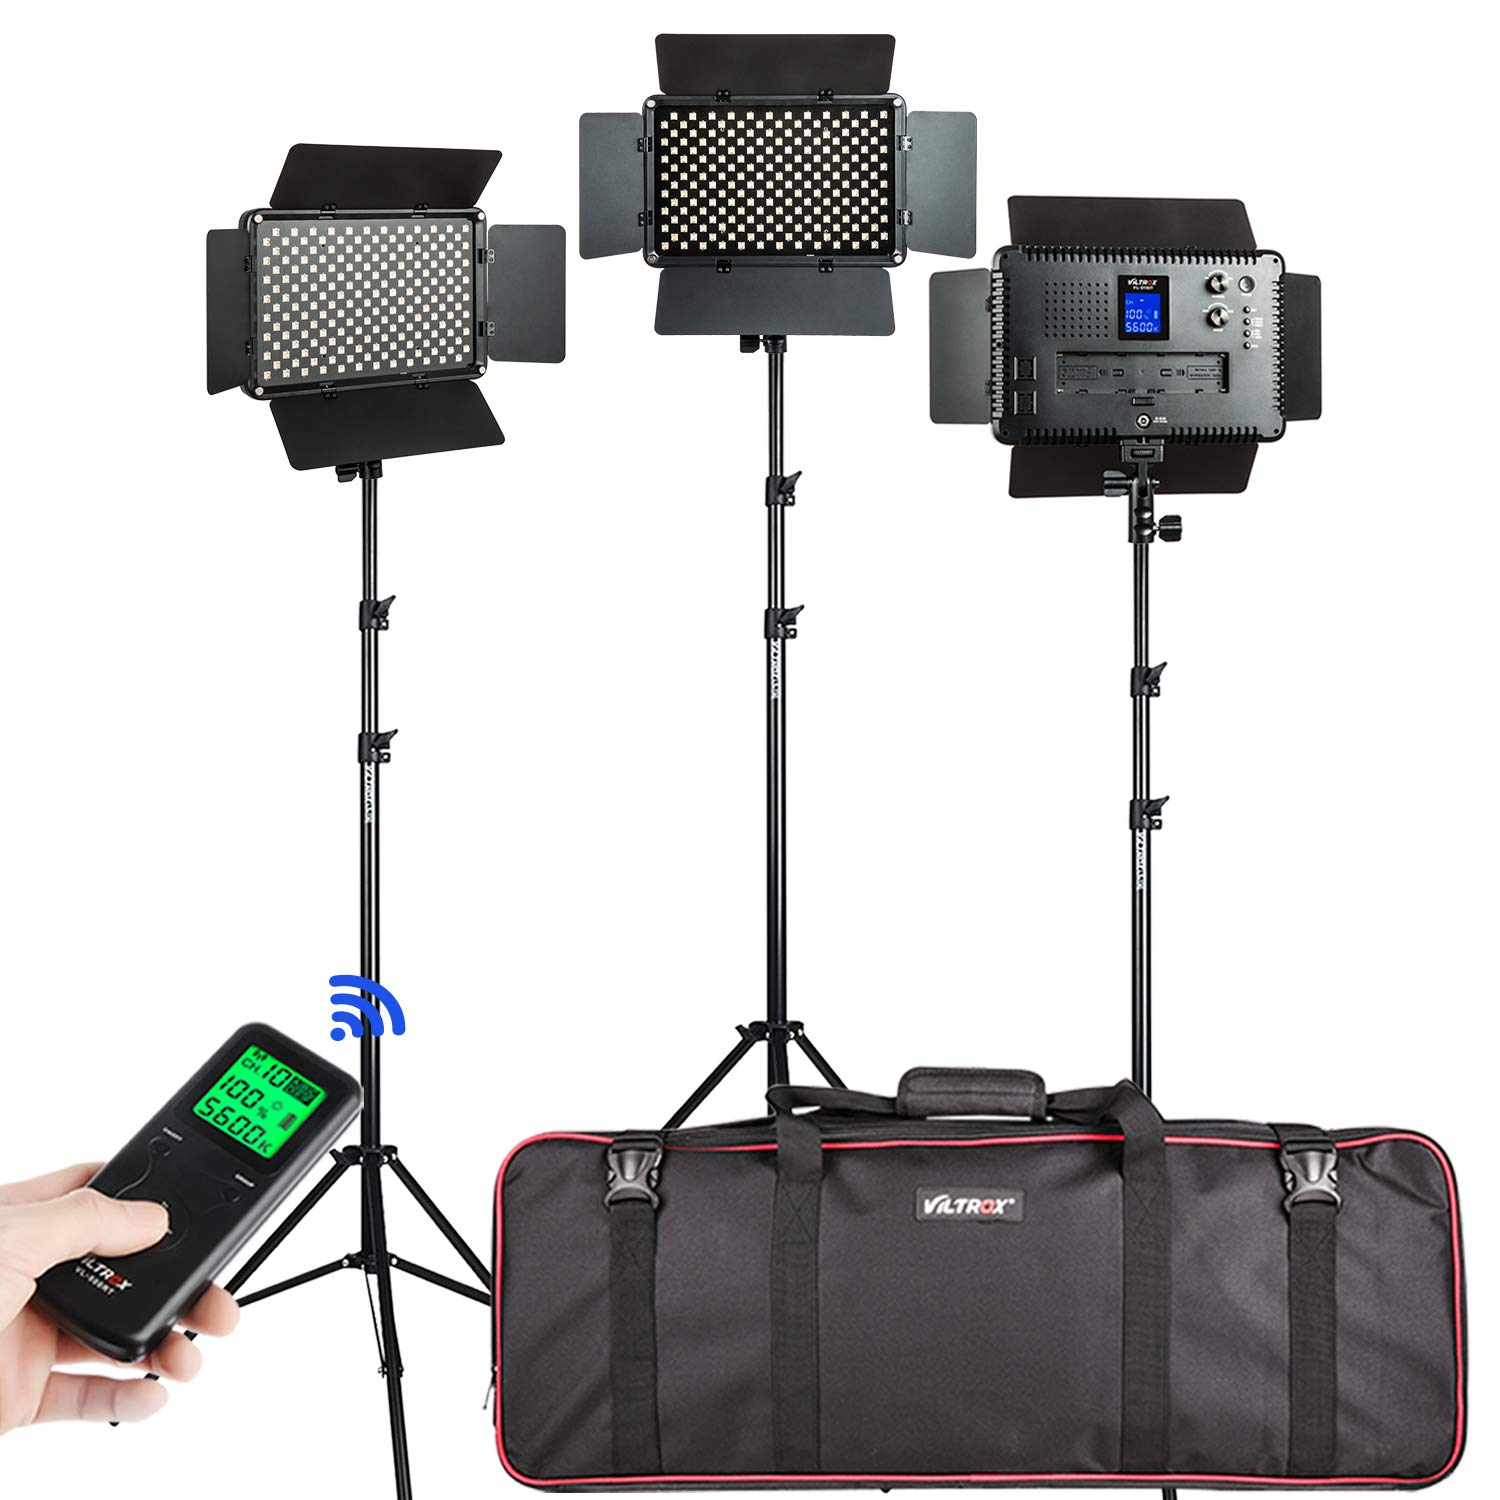 3 Pack VILTROX Bi-Color 45W/4700LM Dimmable Studio Video Light kit with 75 inch Light Stand for Portrait Wedding News Interview Photography by VILTROX